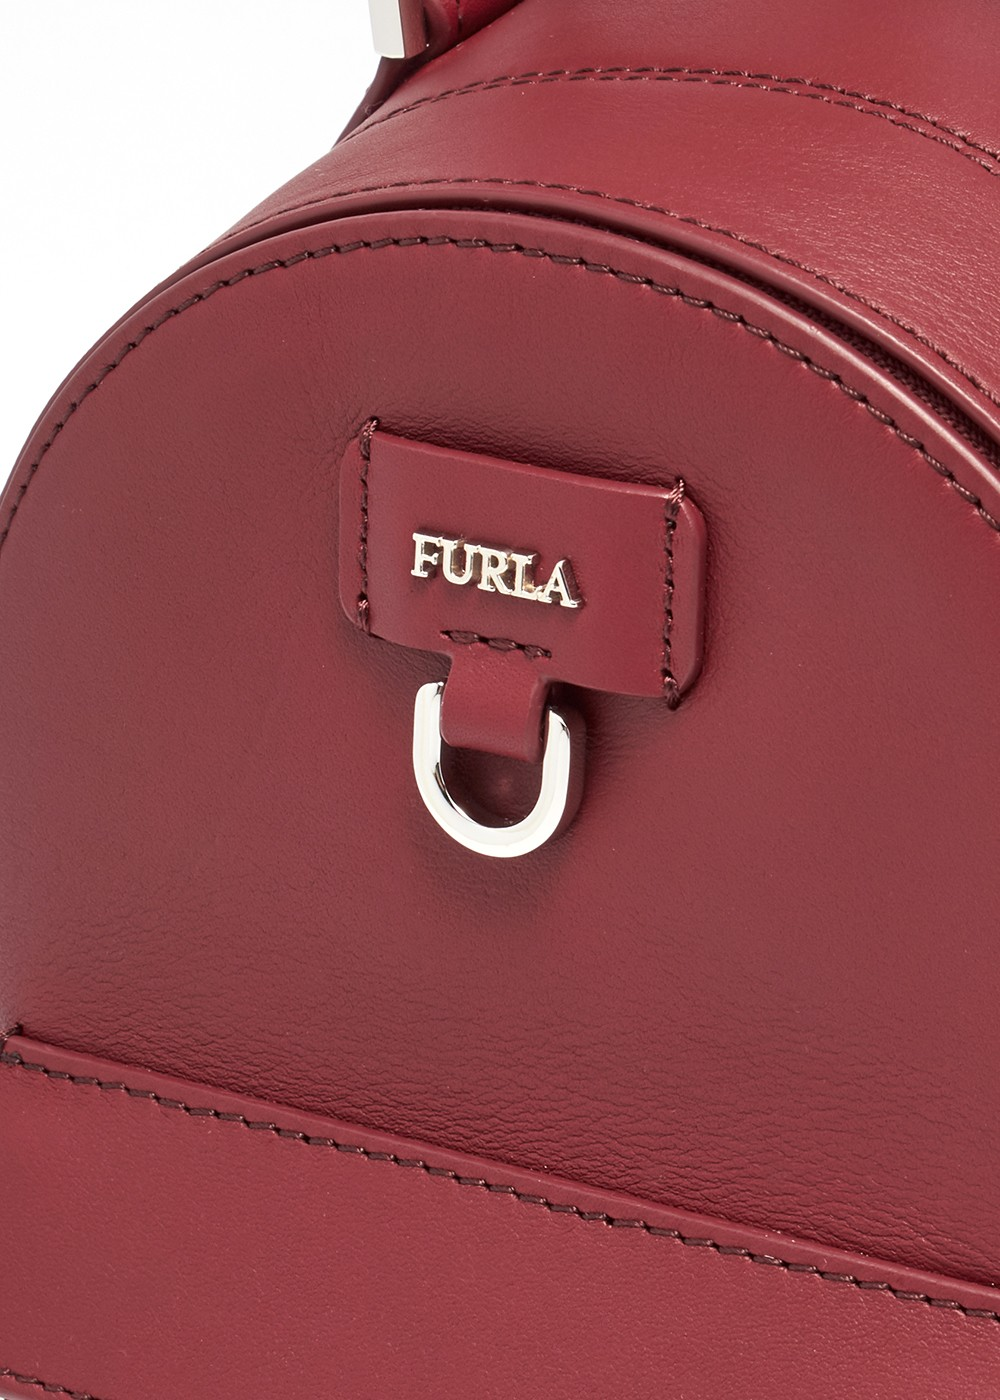 【最大57%OFF】【FURLA】FURLA FAVOLAミニバッグ|CILIEGIA|リュック|2019 SPRING & SUMMER NEW ARRIVAL COLLECTION